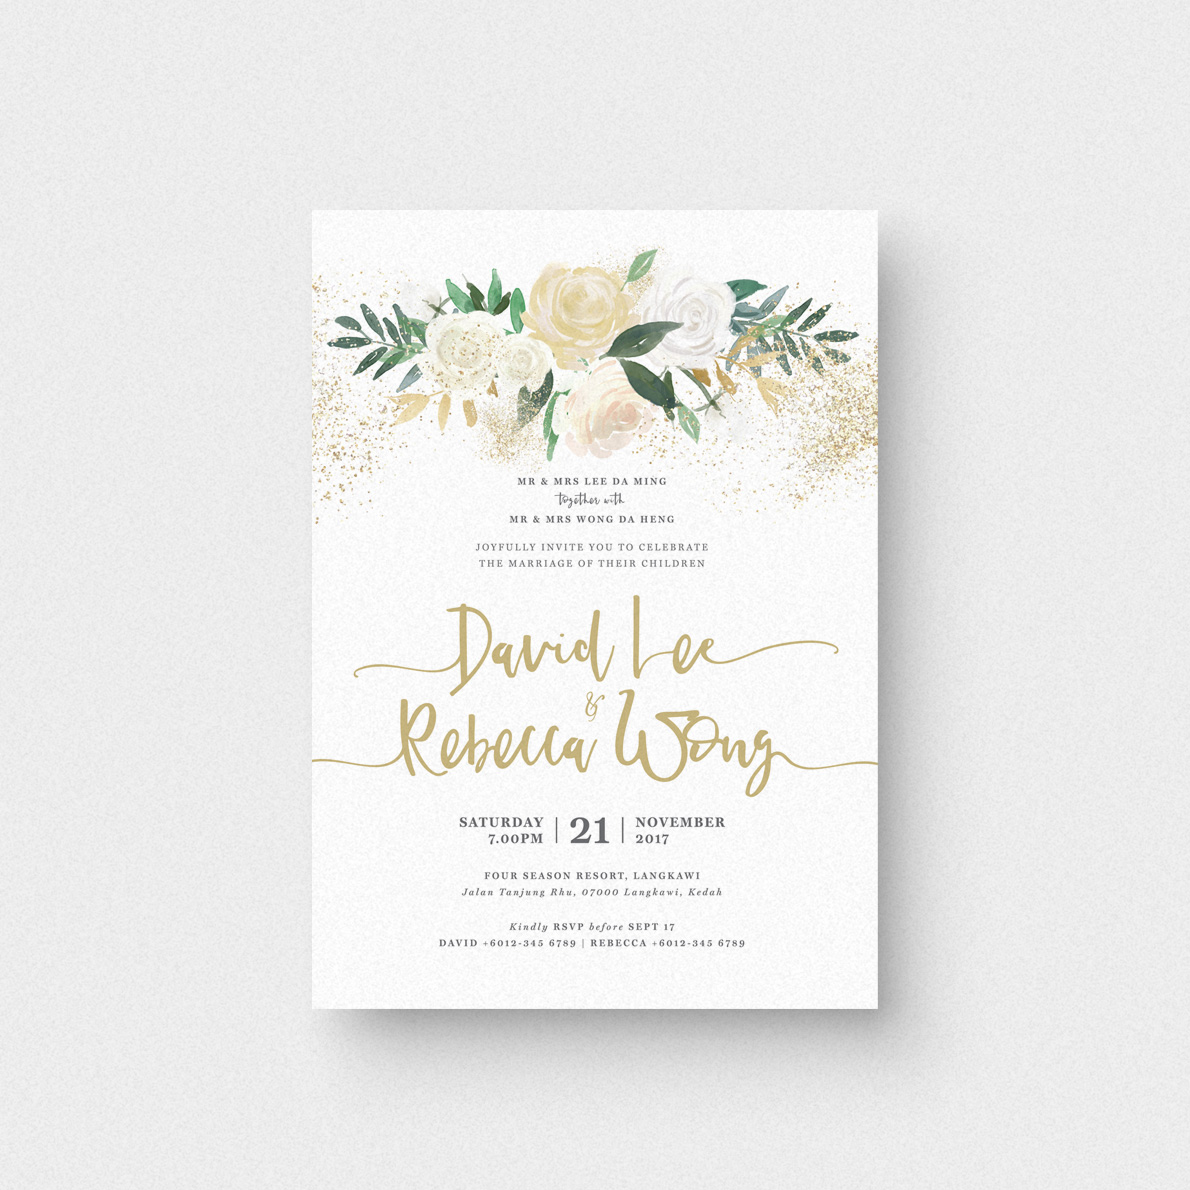 Wedding Invitation Postcard: Audrea Floral I Invitation Card